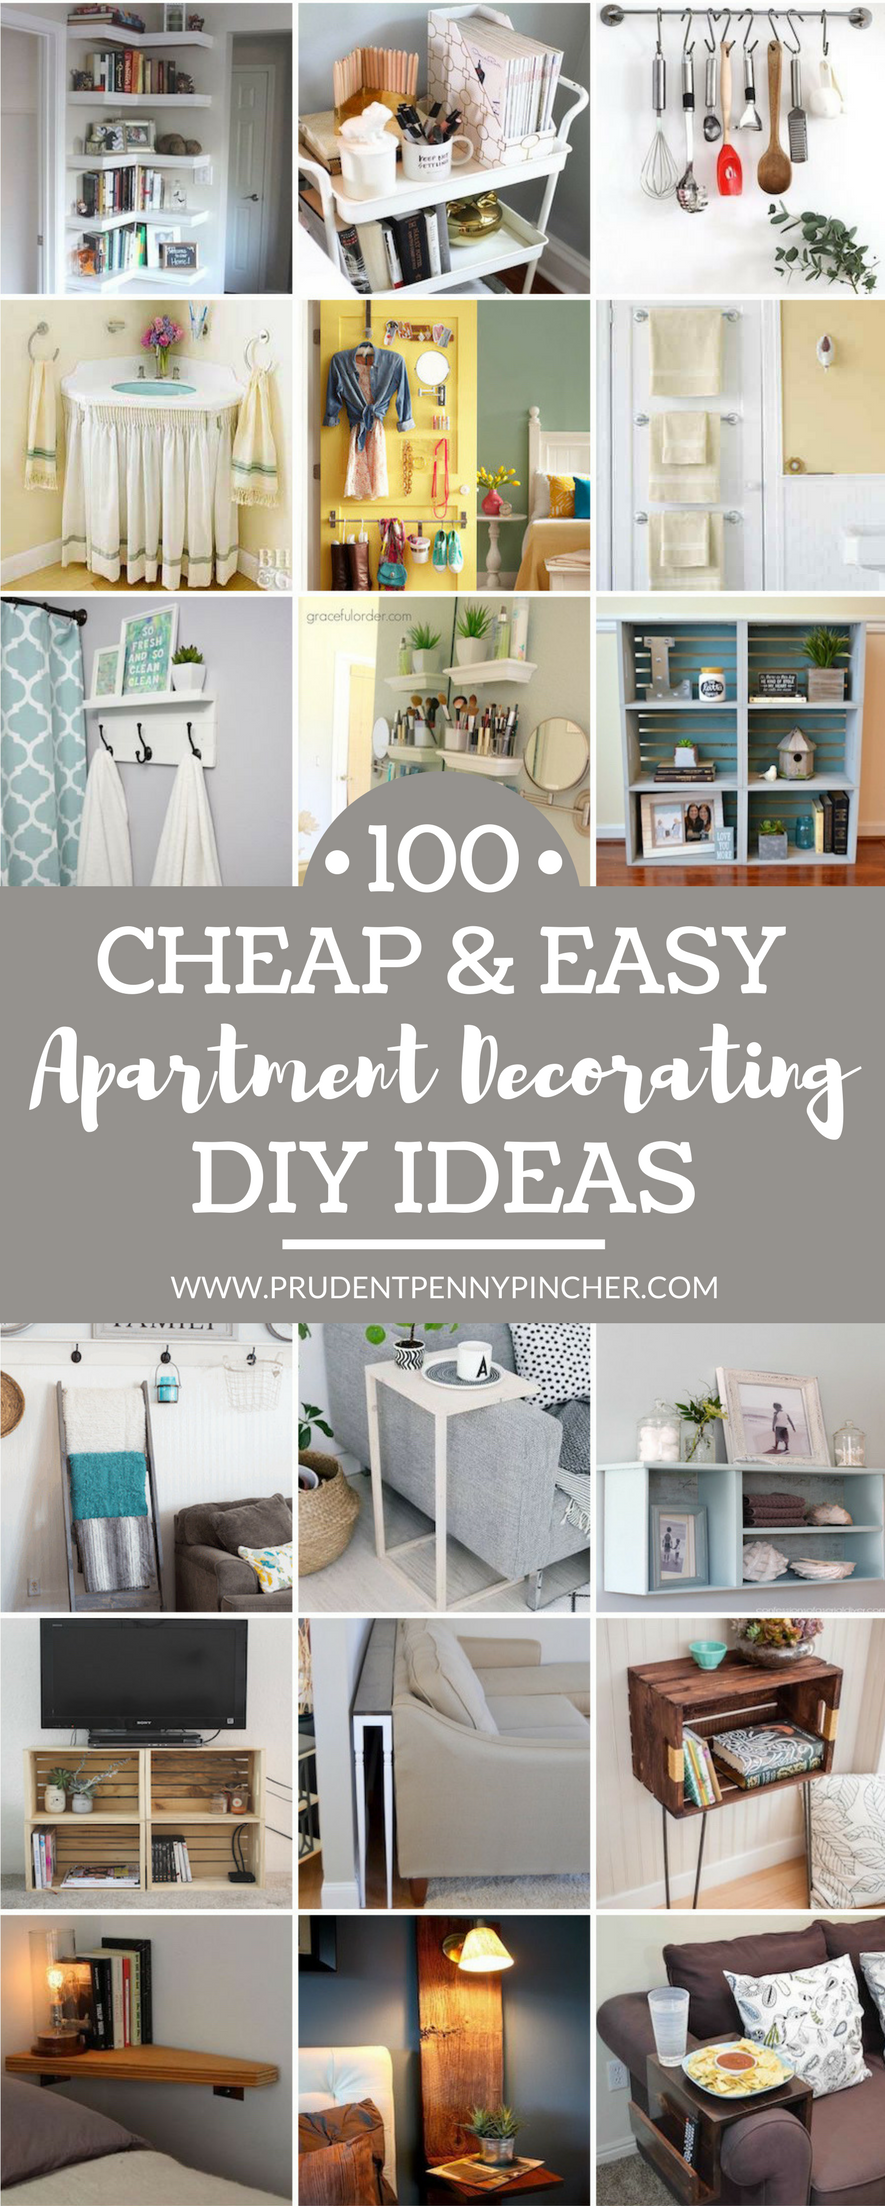 18 DIY Apartment Decorating Ideas  Diy apartment decor, Simple